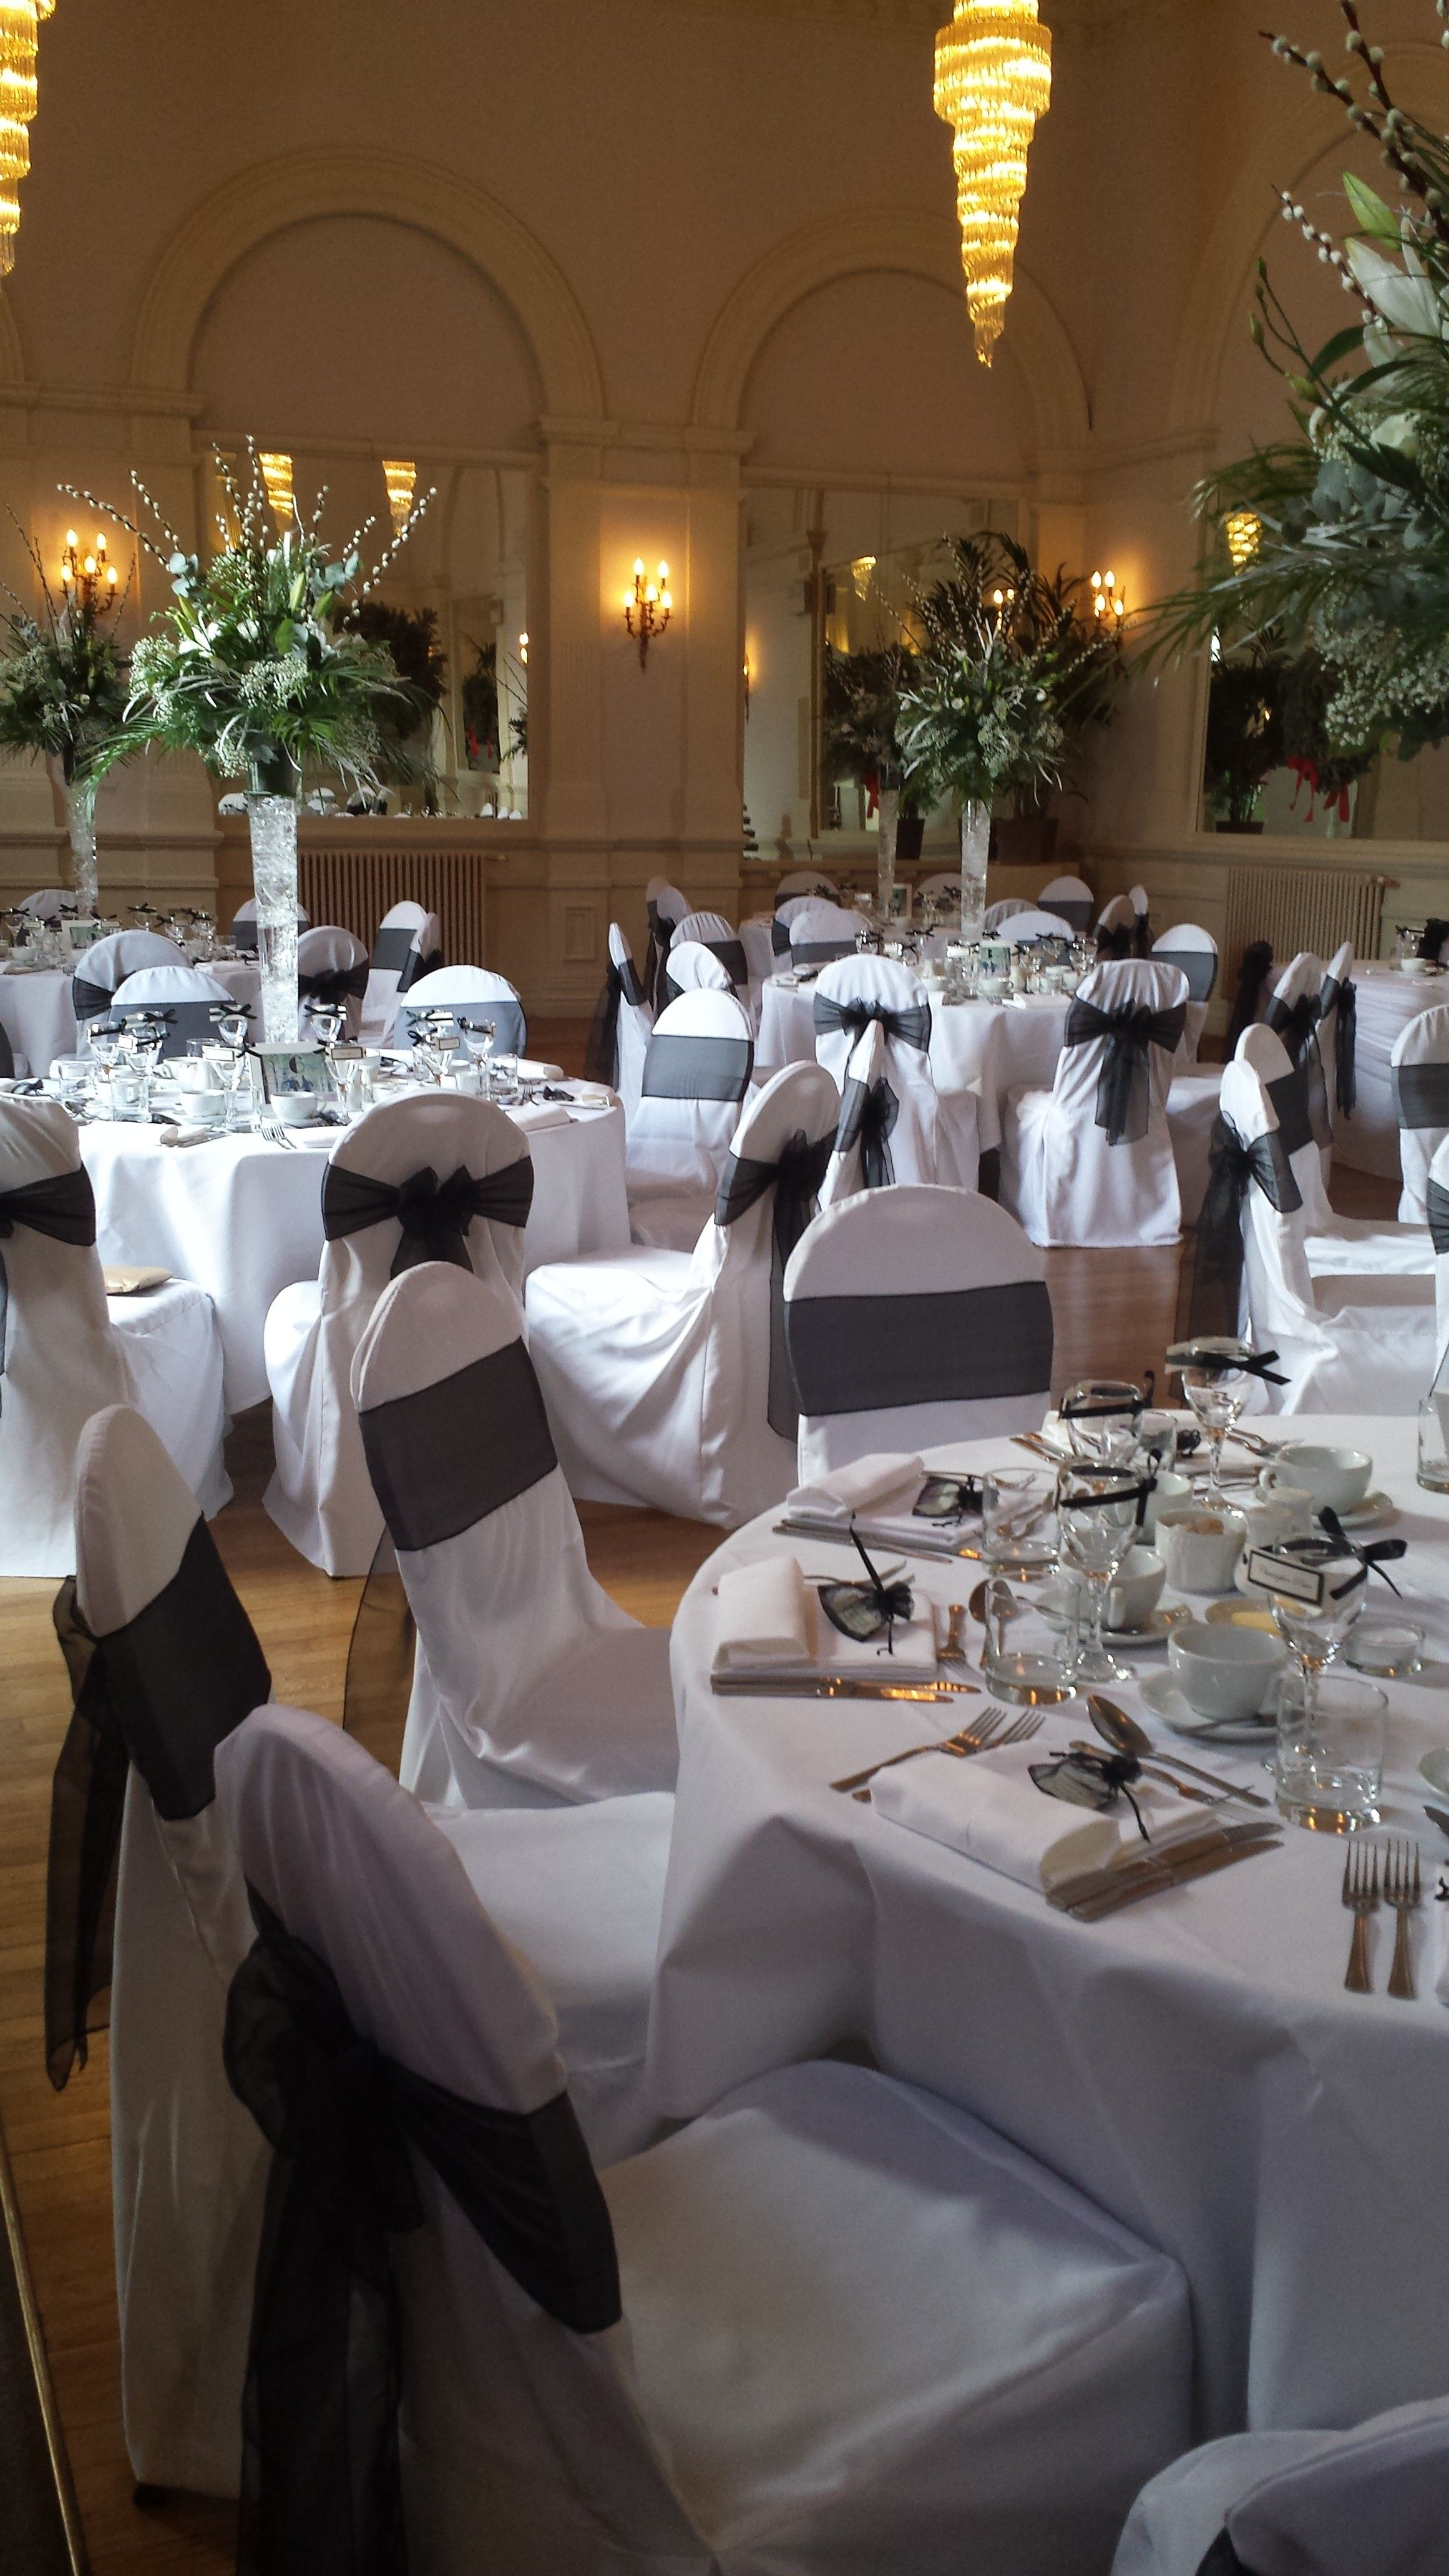 Congratulations to our beautiful bride and groom today at The Angel Hotel, Abergavenny